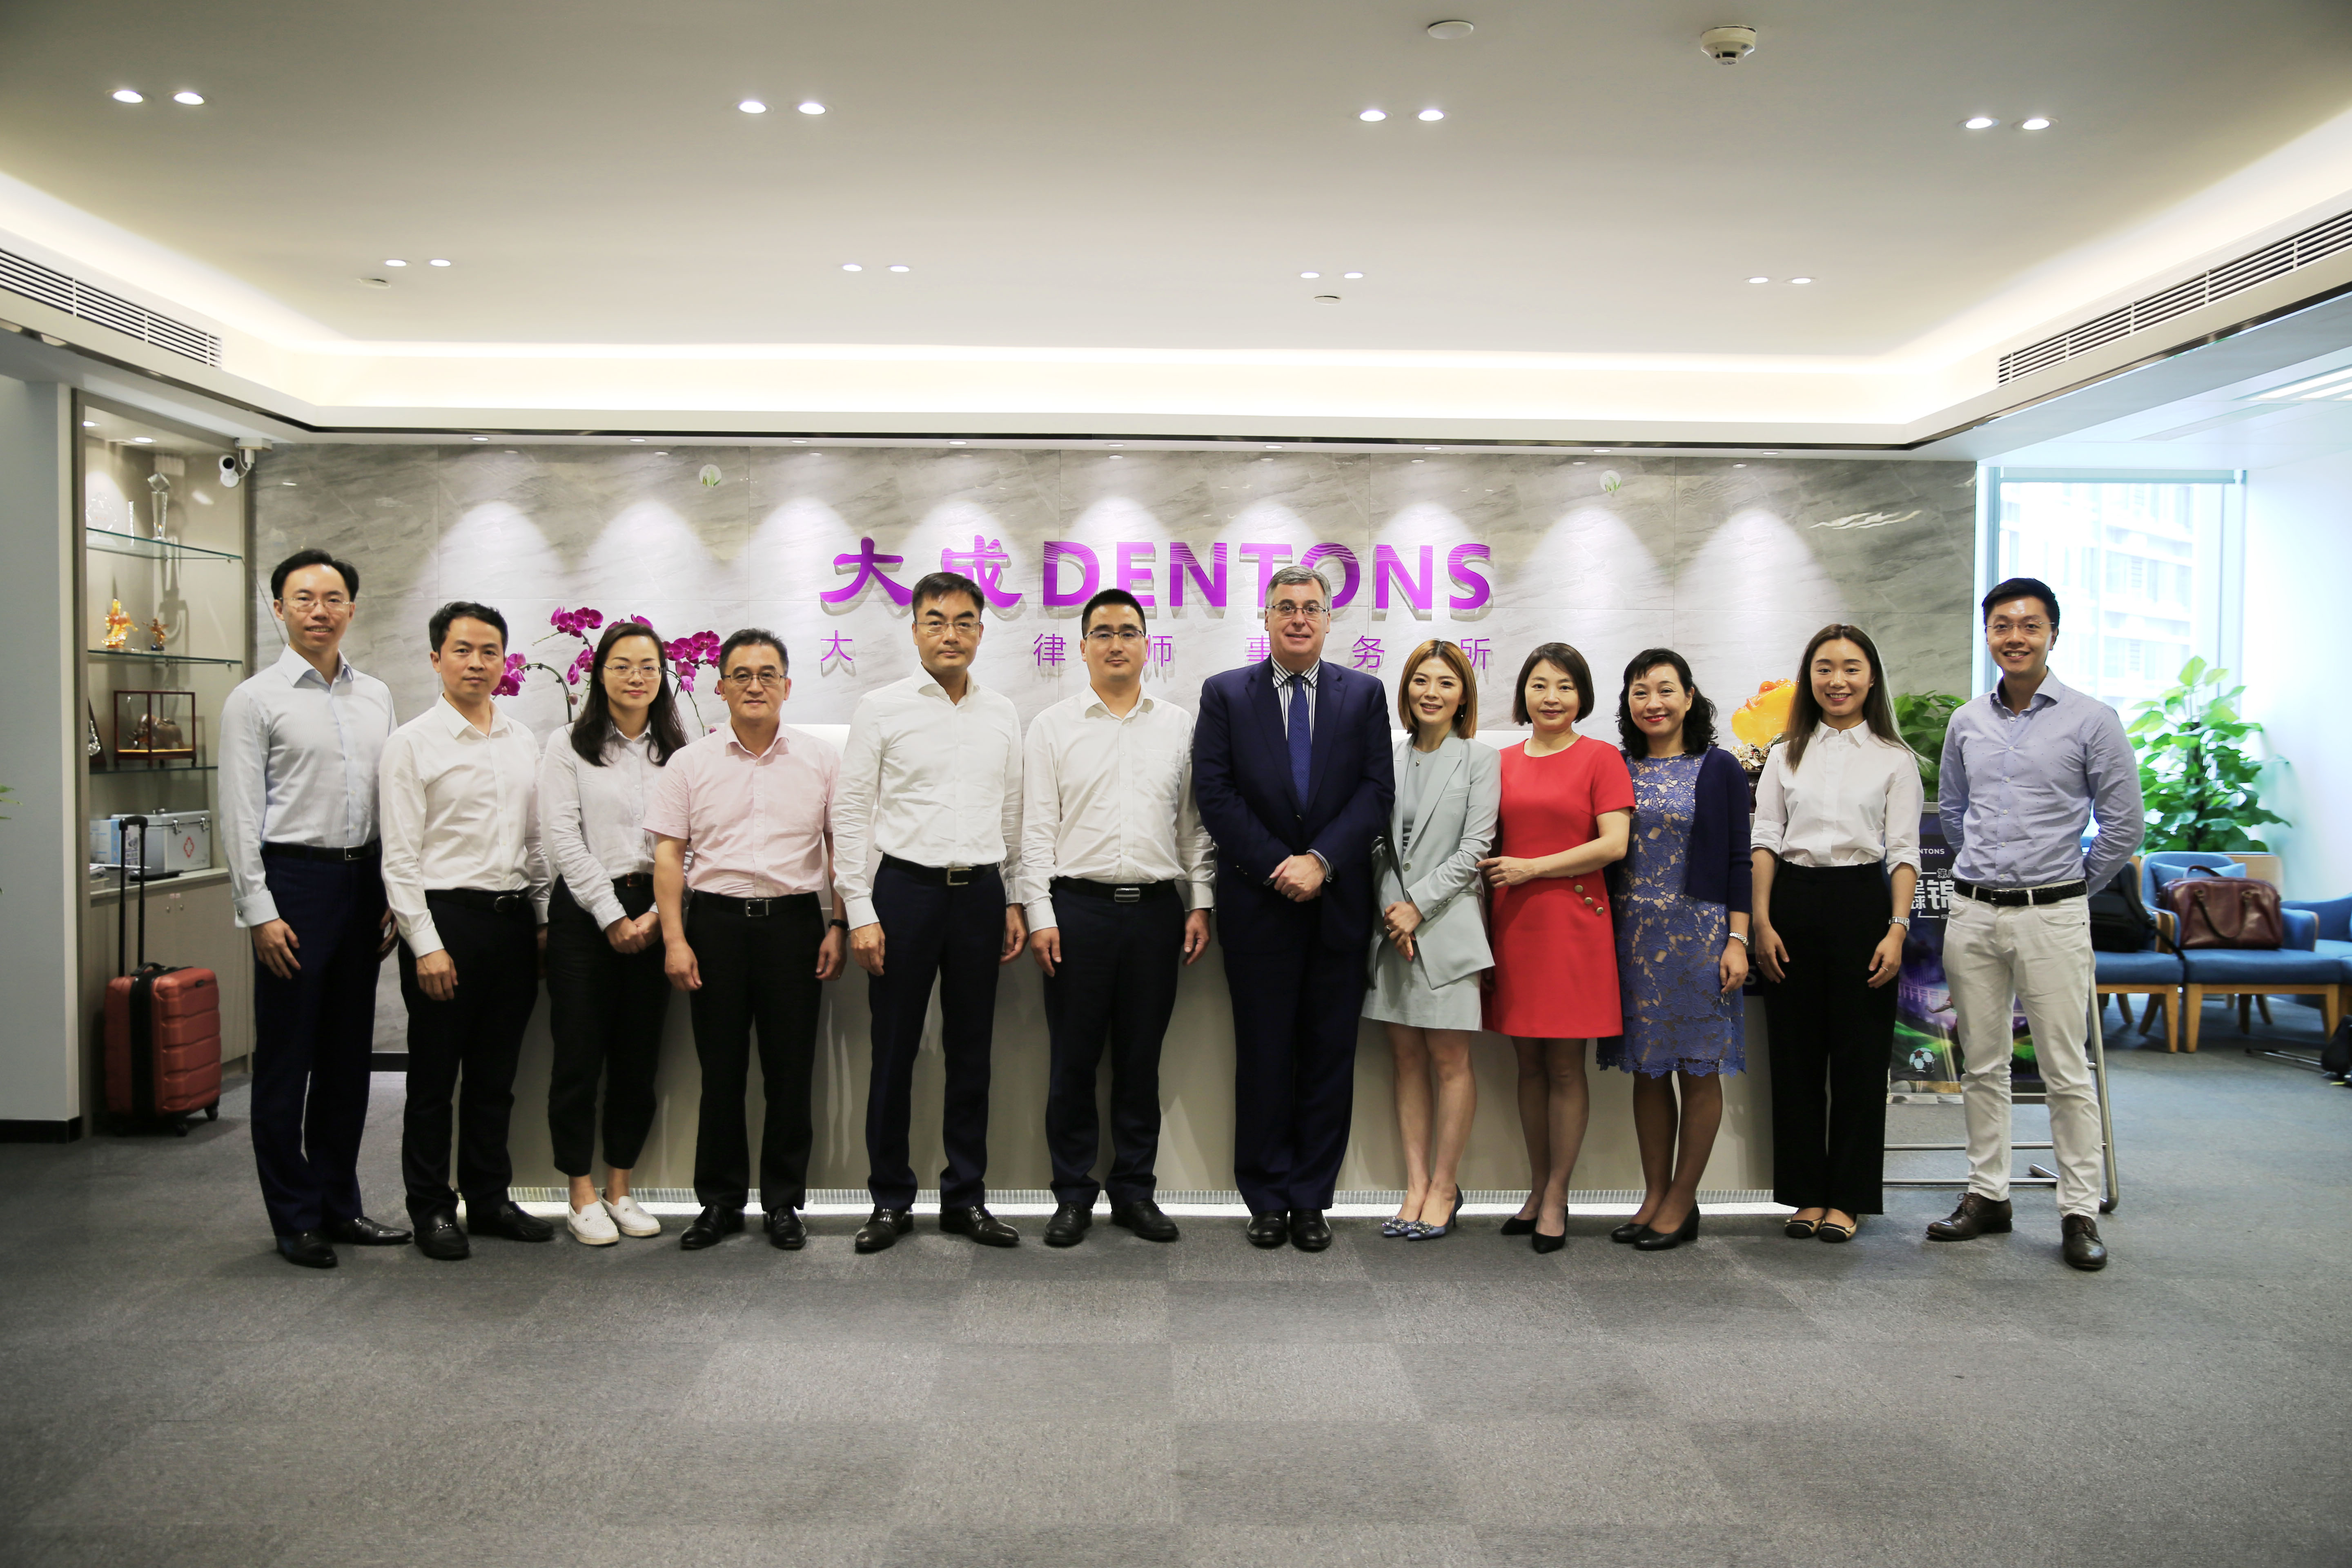 Dentons Greater Bay Area (GBA) Joint Conference Committee 2019